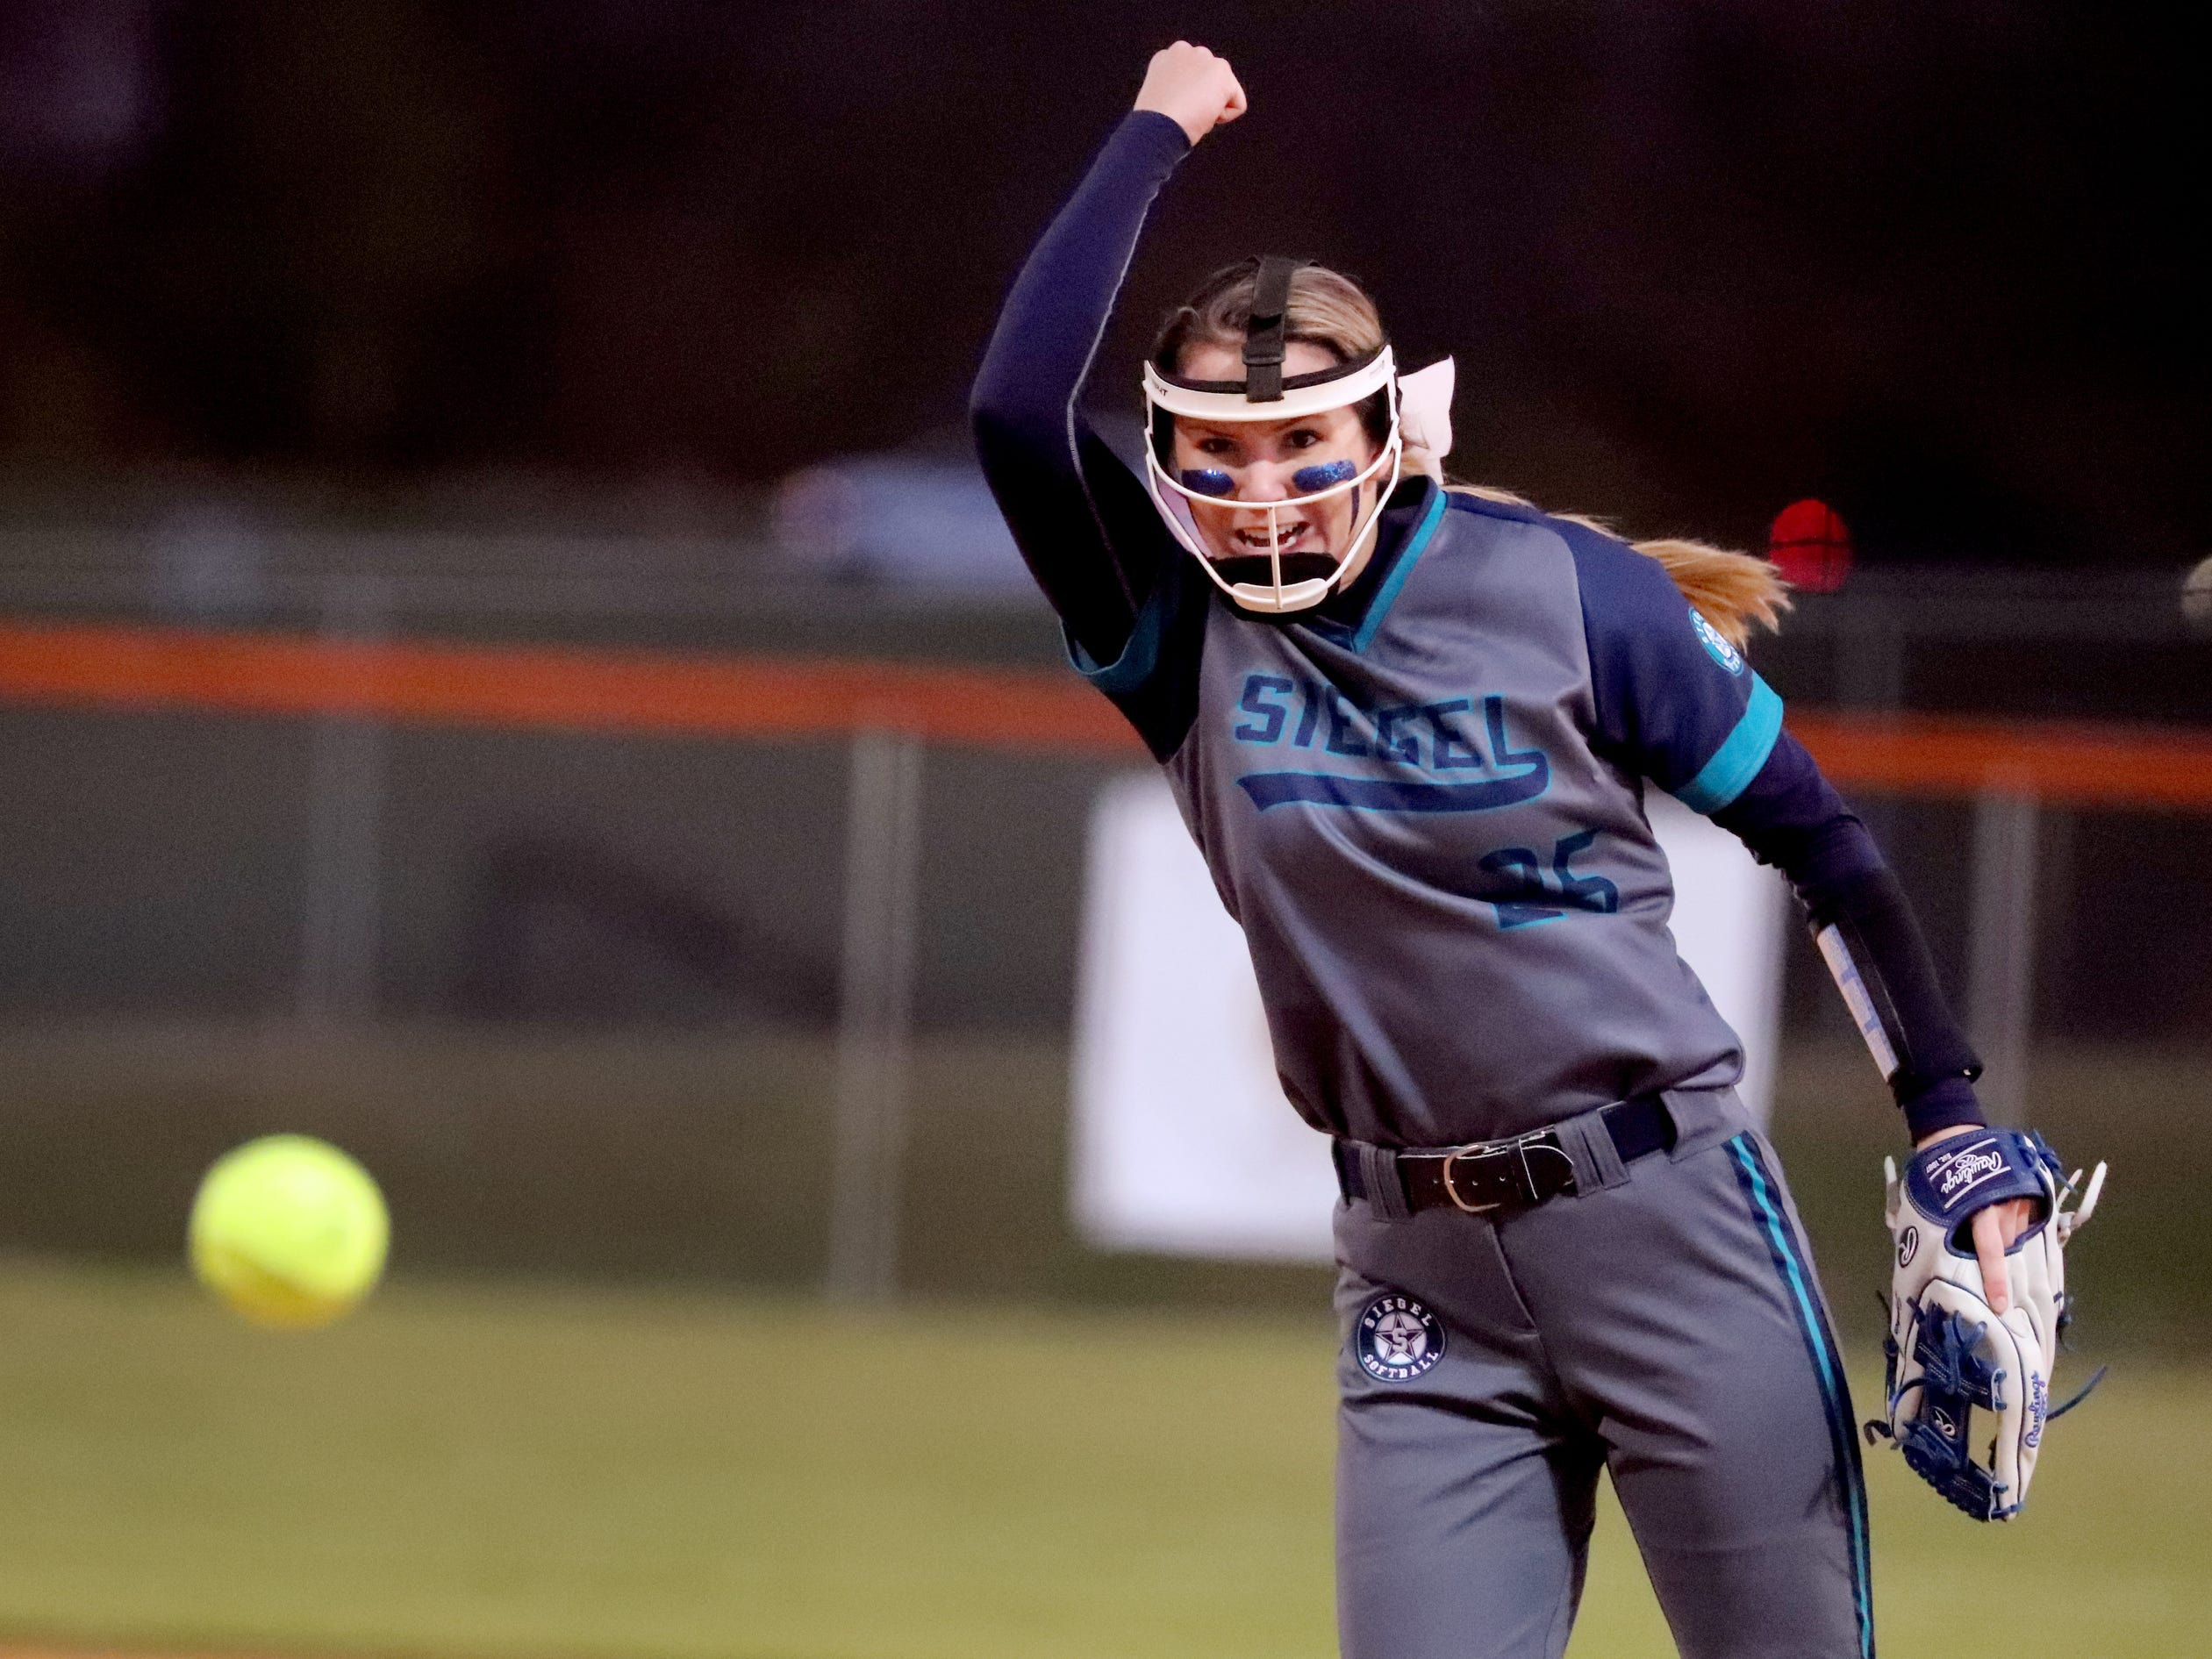 Siegel's Sophie Golliver (25) pitches against Blackman, on Monday, March 18, 2019, at Blackman.